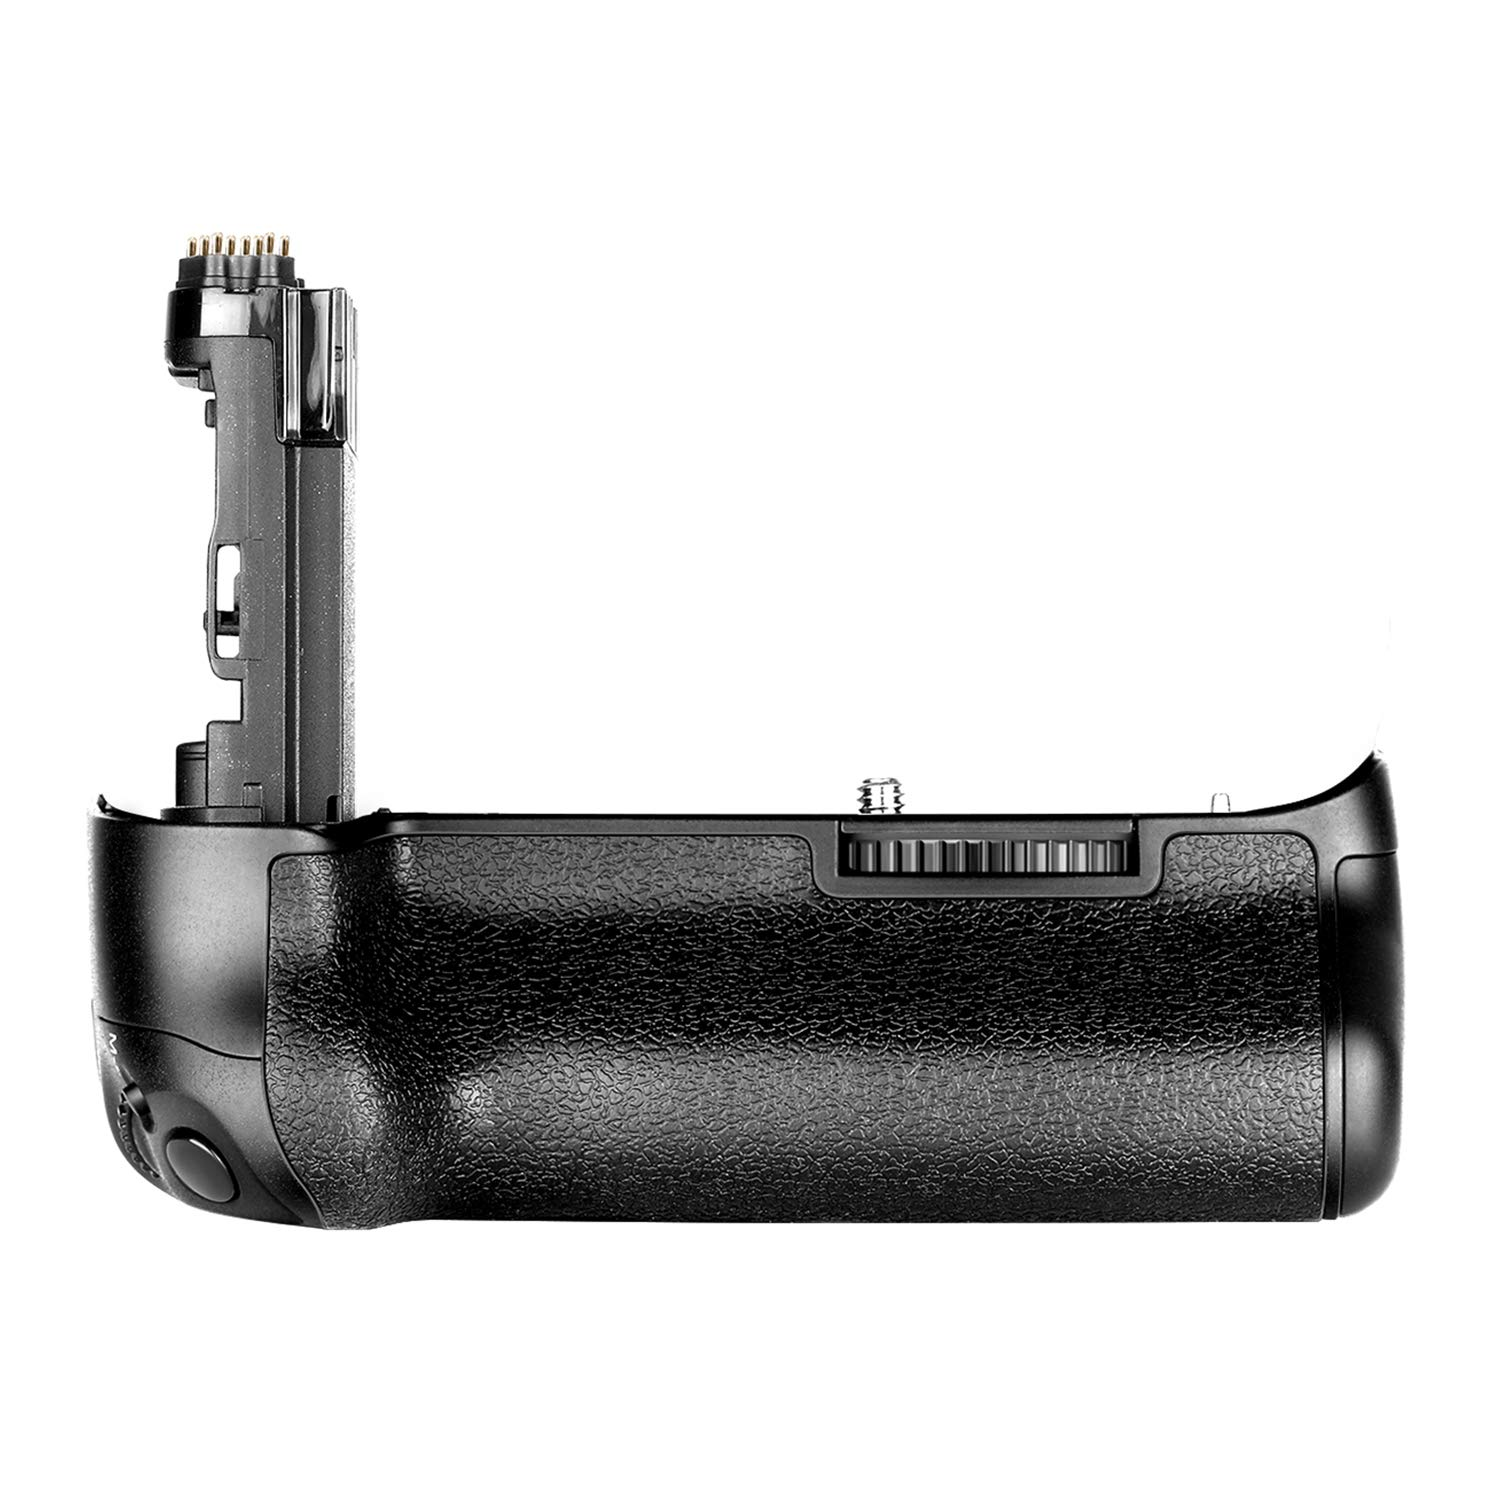 Neewer Battery Grip Compatible with Canon 5D Mark IV Camera, Canon BG-E20, Work with LP-E6 LP-E6N Batteries